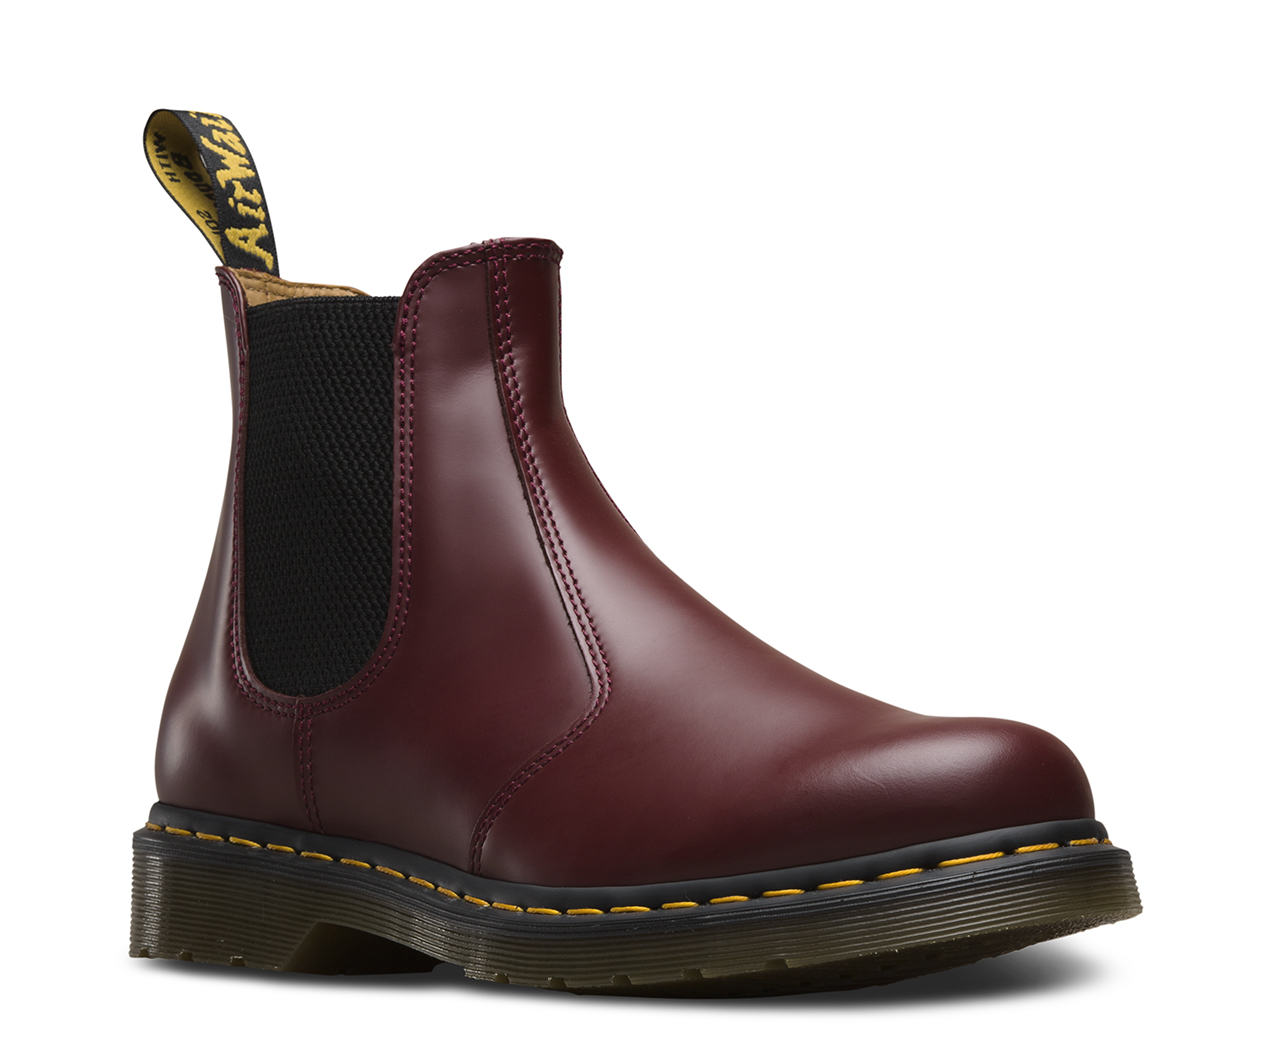 chelsea boot 2976 yellow stitch | 2976 chelsea boots | official dr. martens store ECZRAHP